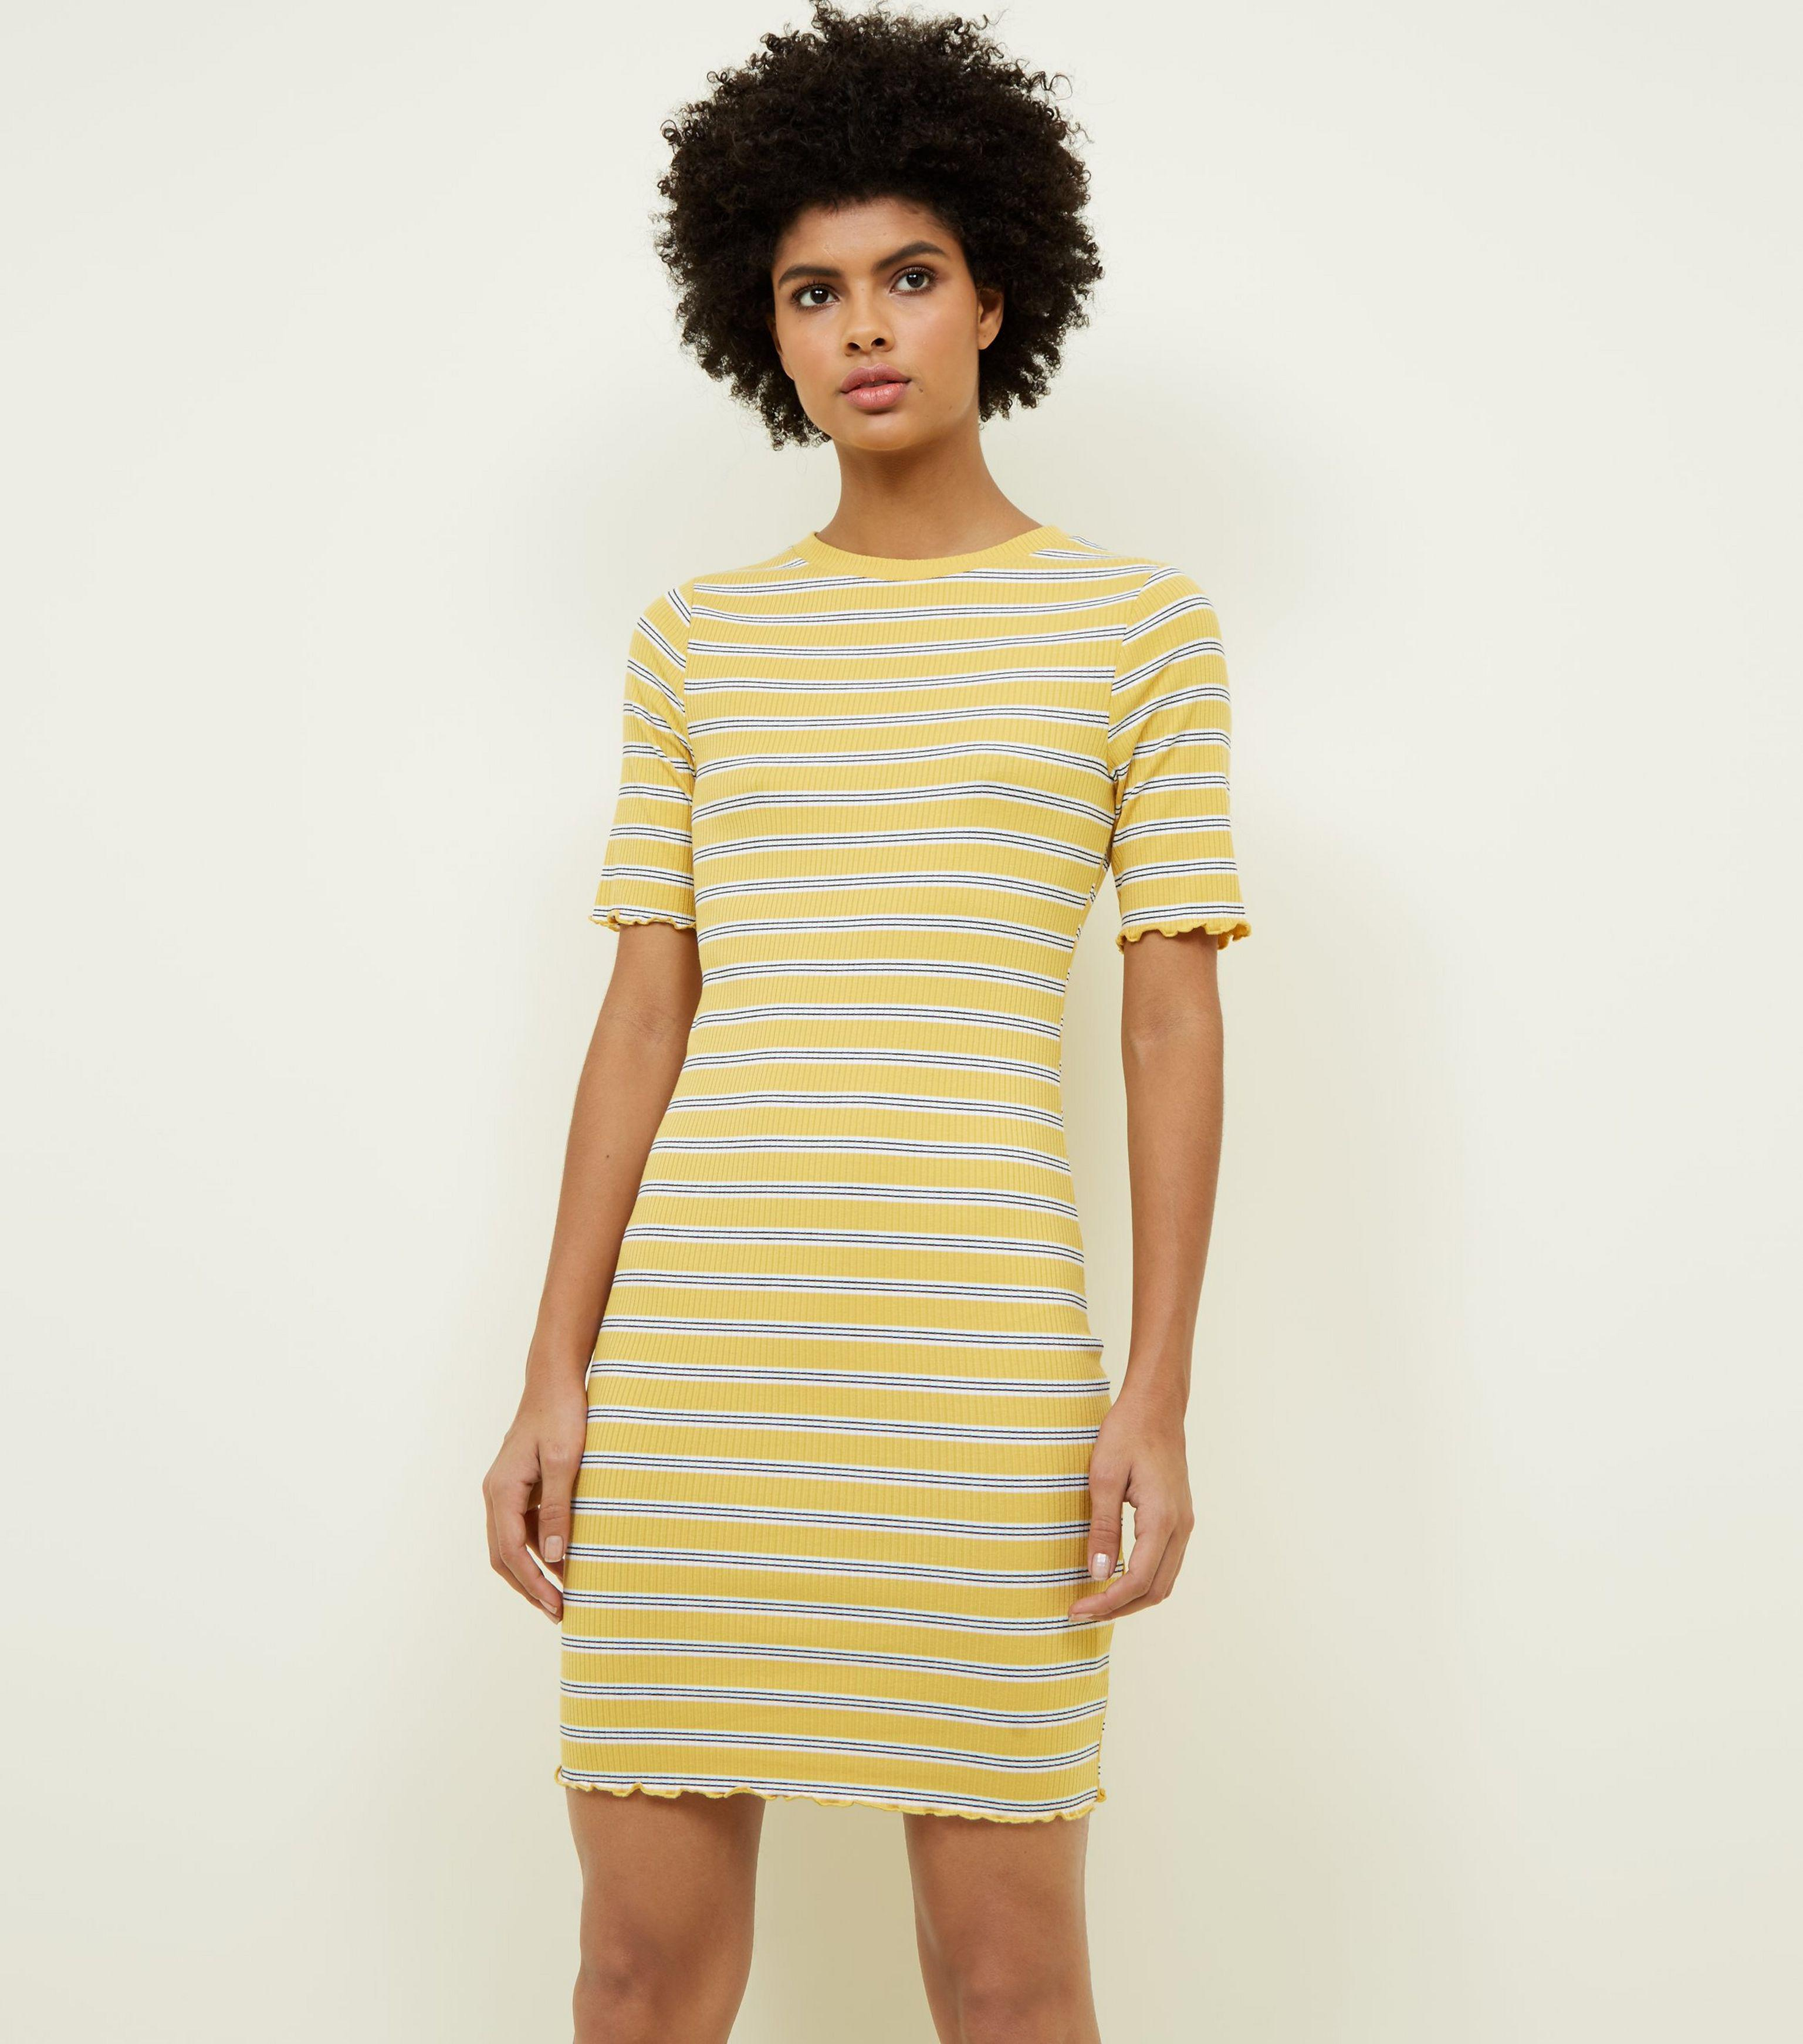 52046cca046 New Look Mustard Stripe Ribbed Bodycon Dress in Yellow - Lyst